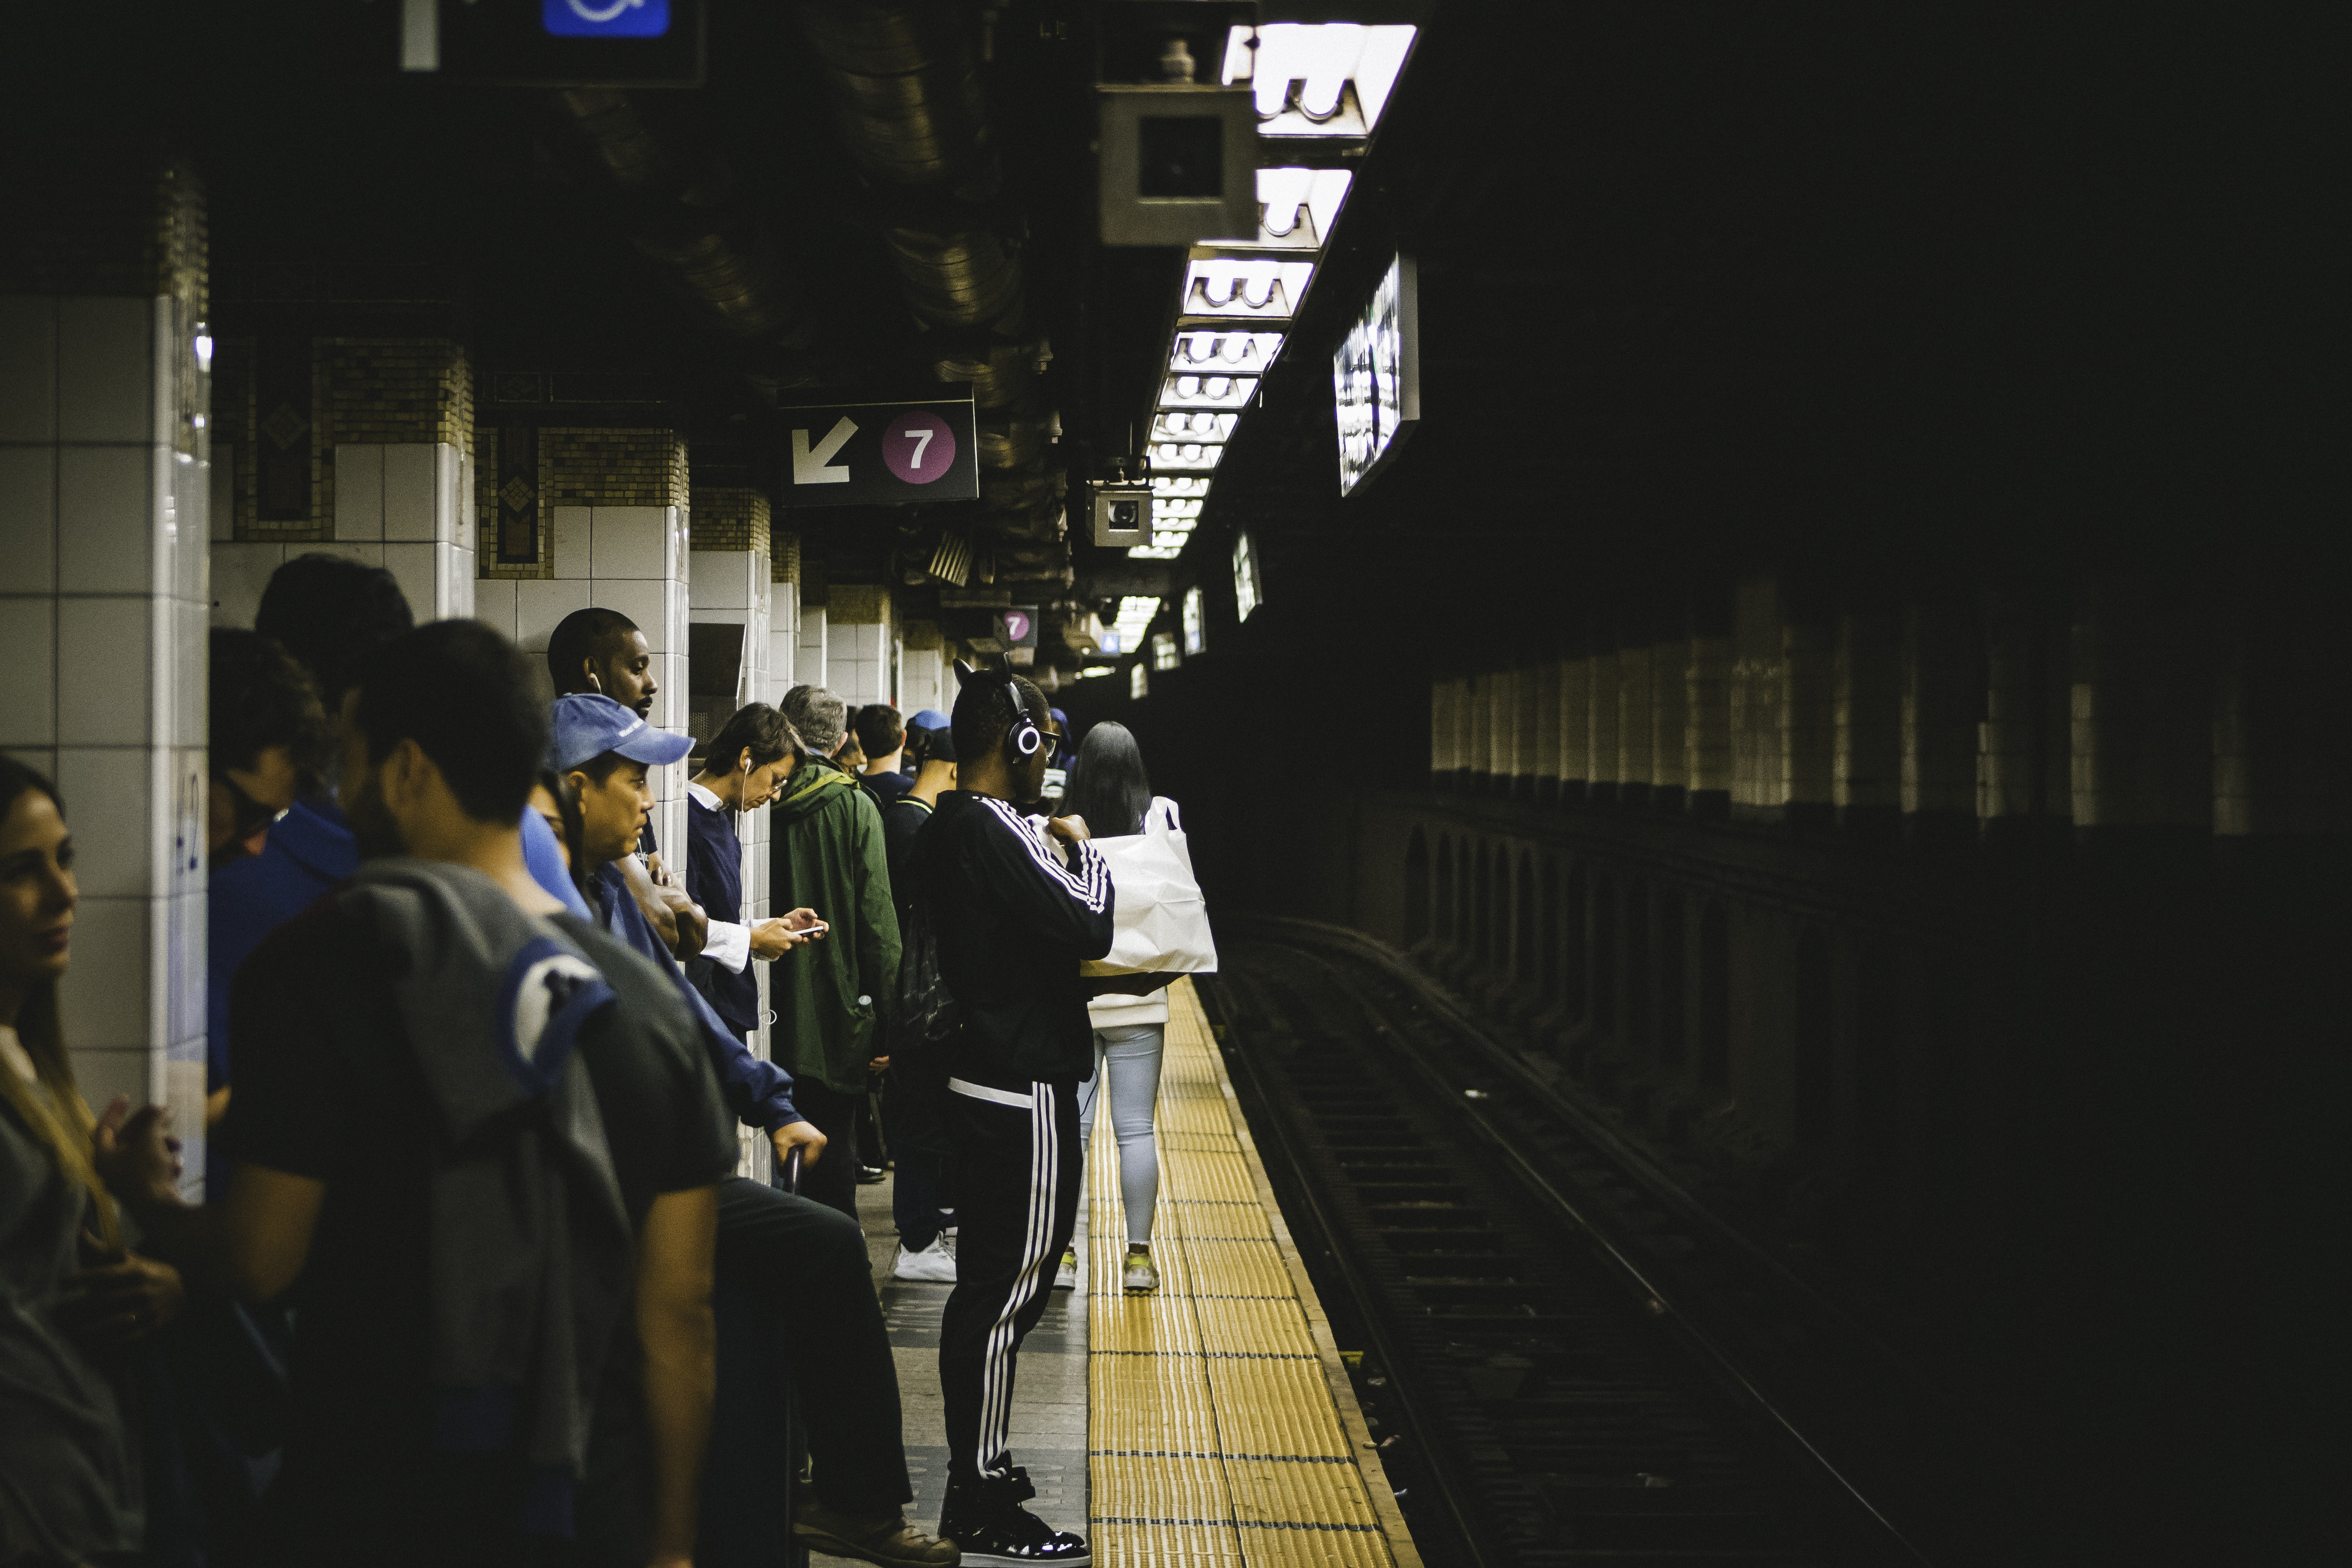 people standing in train station tunnel